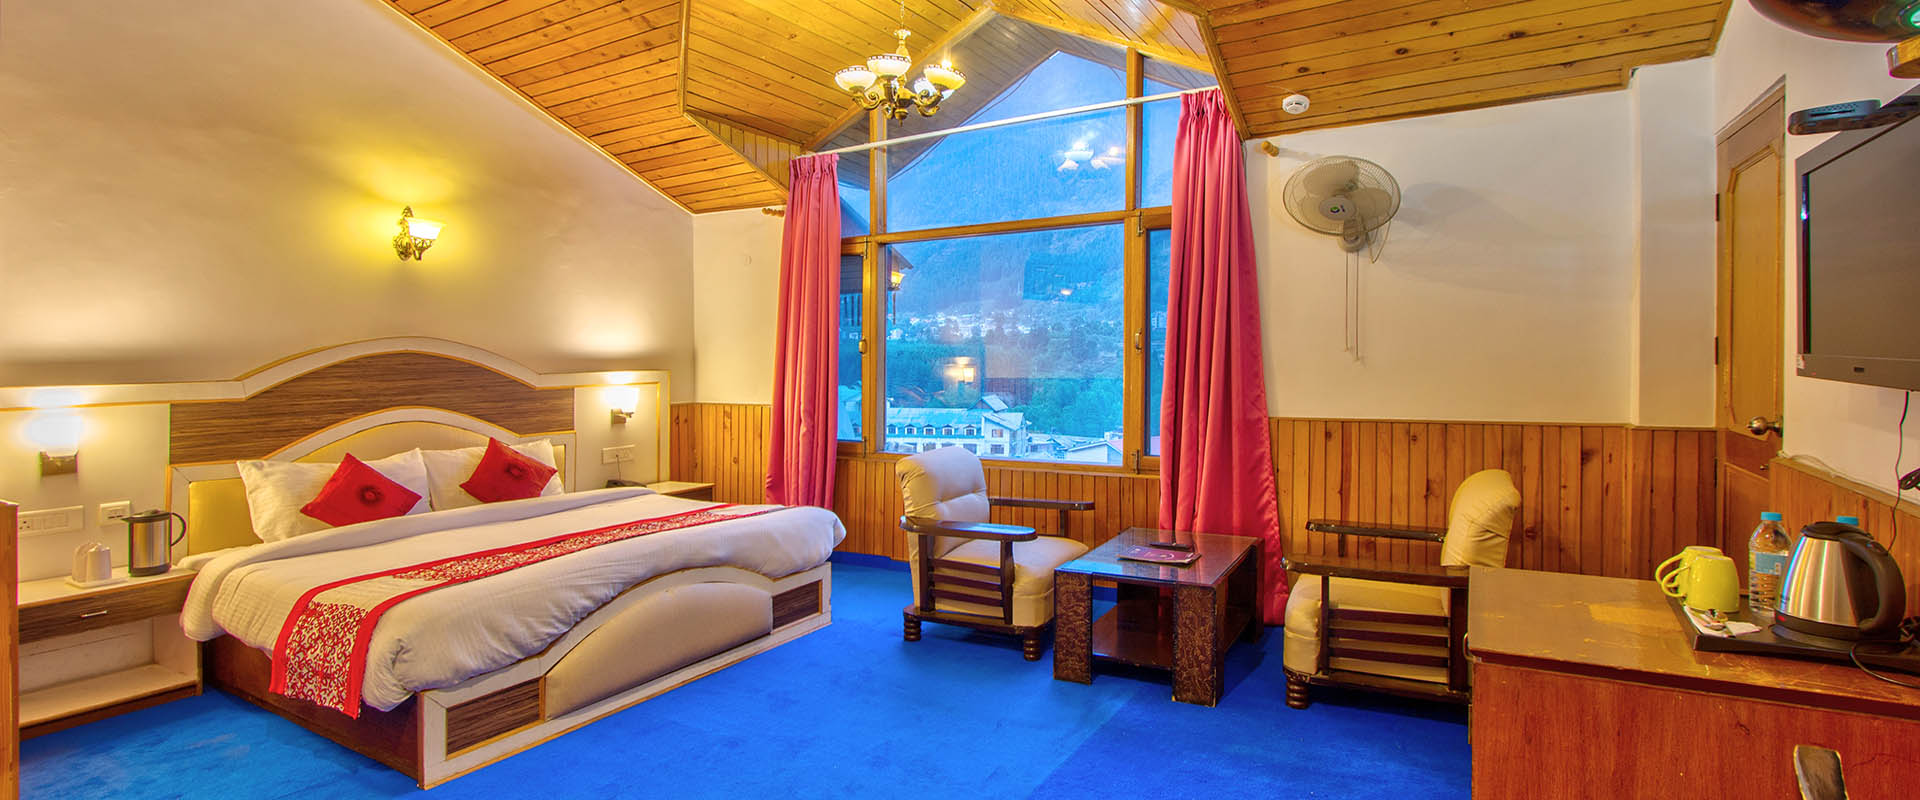 Luxury Cottage Room - Luxury accommodation in manali